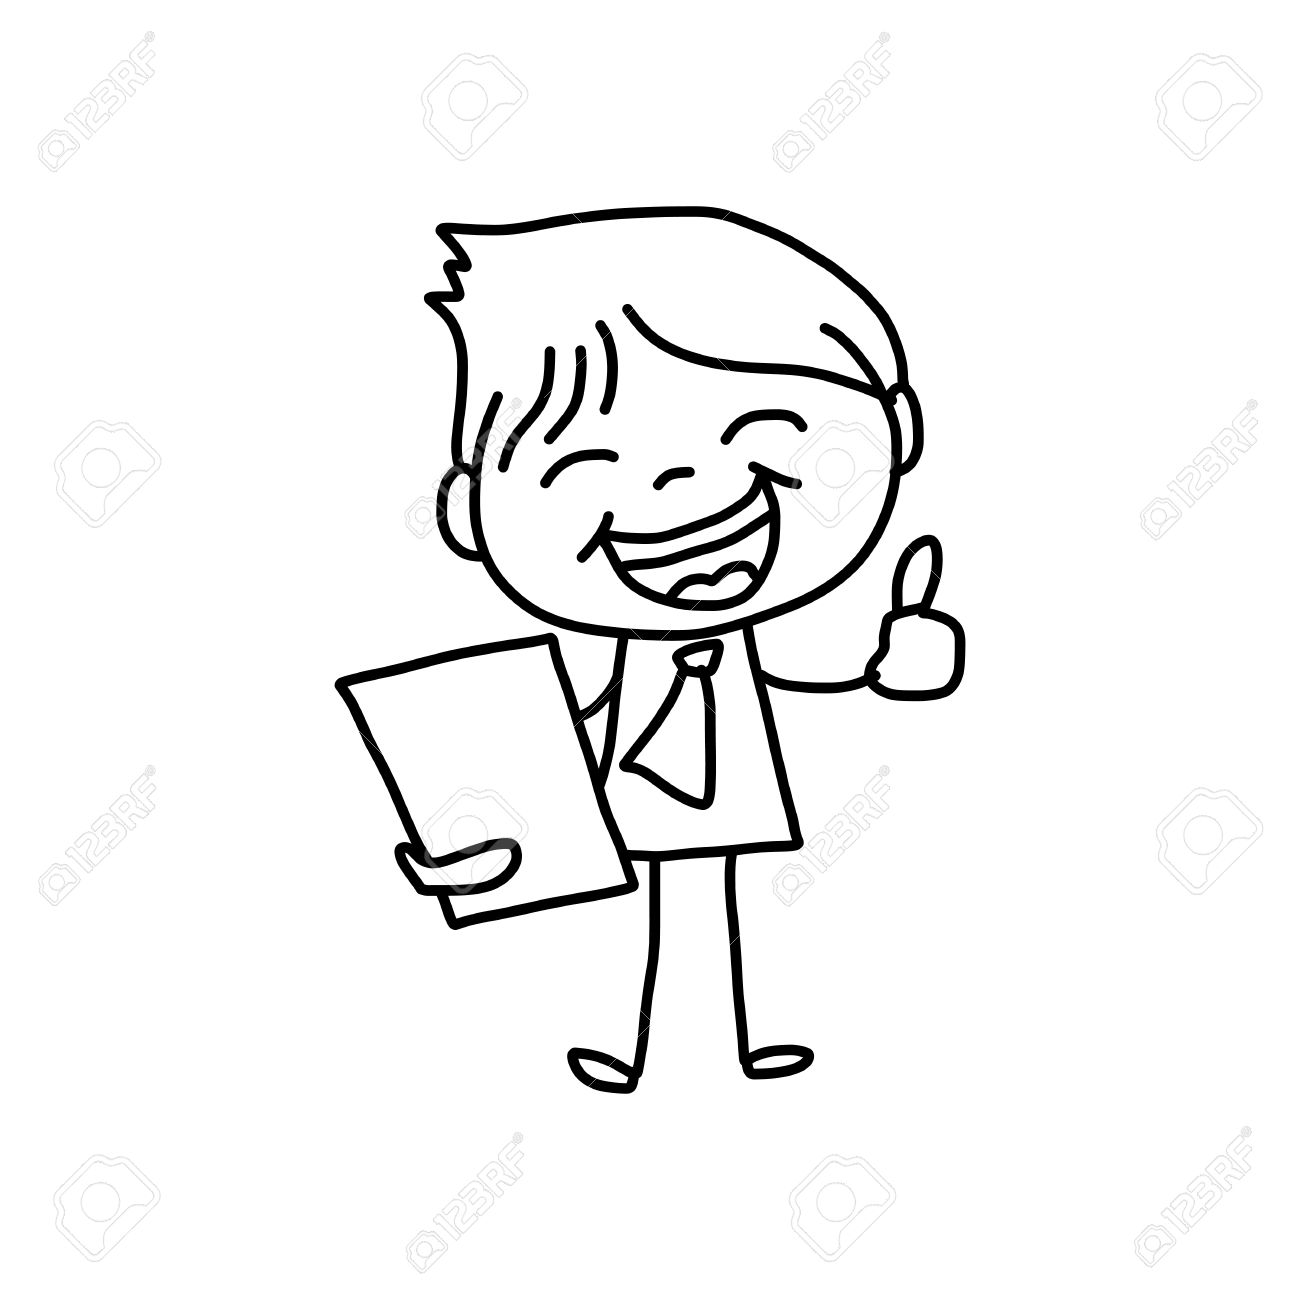 hand drawing cartoon character happy business person royalty free rh 123rf com happy old person cartoon happy person cartoon picture